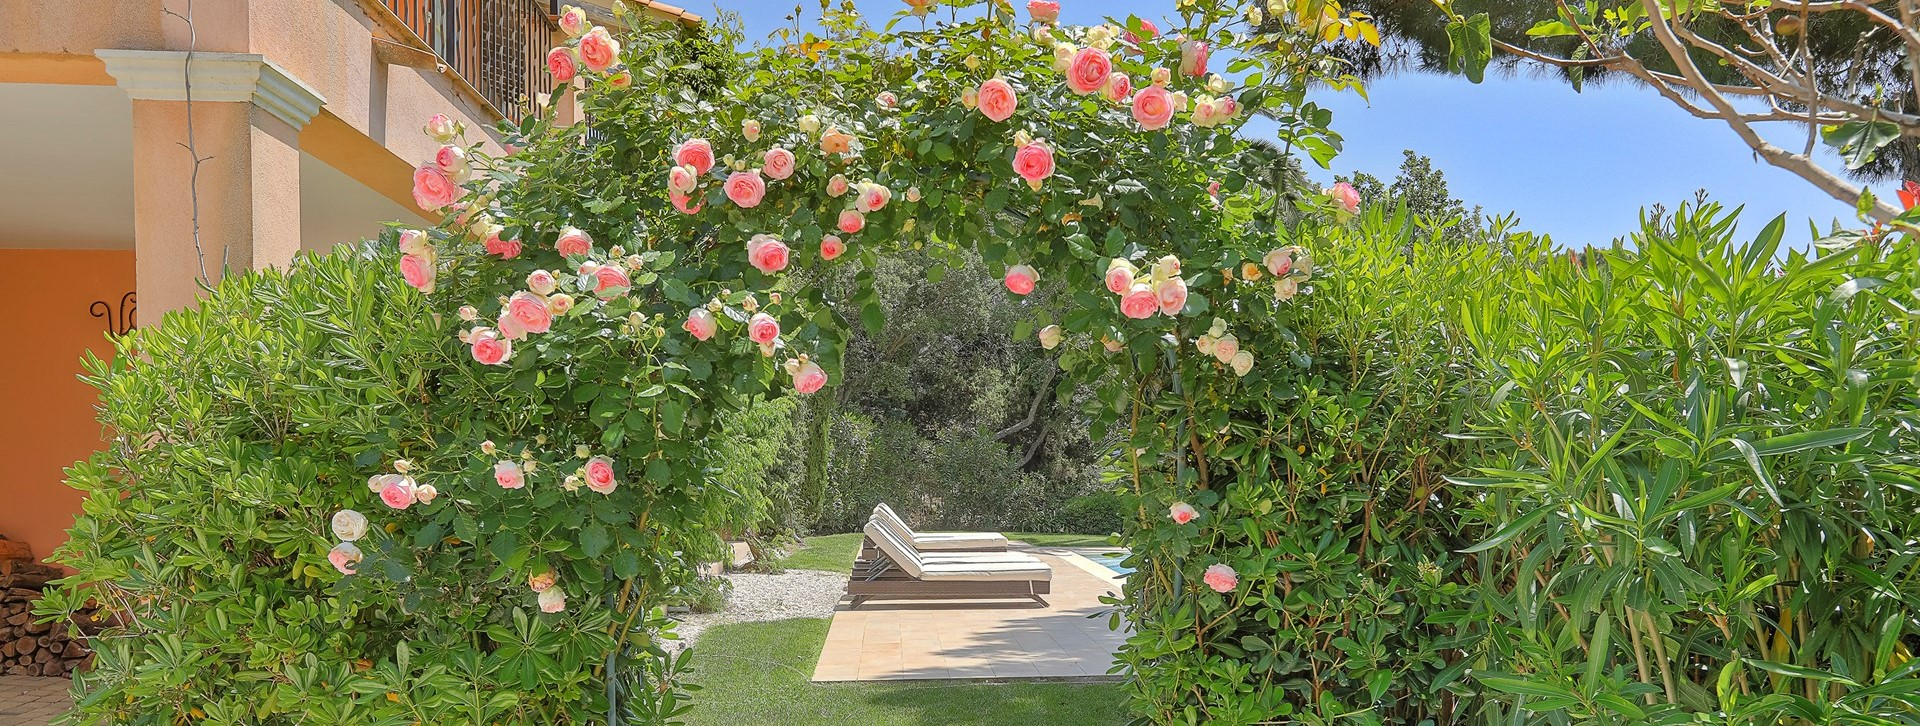 villa-gigaro-rose-arch-to-pool